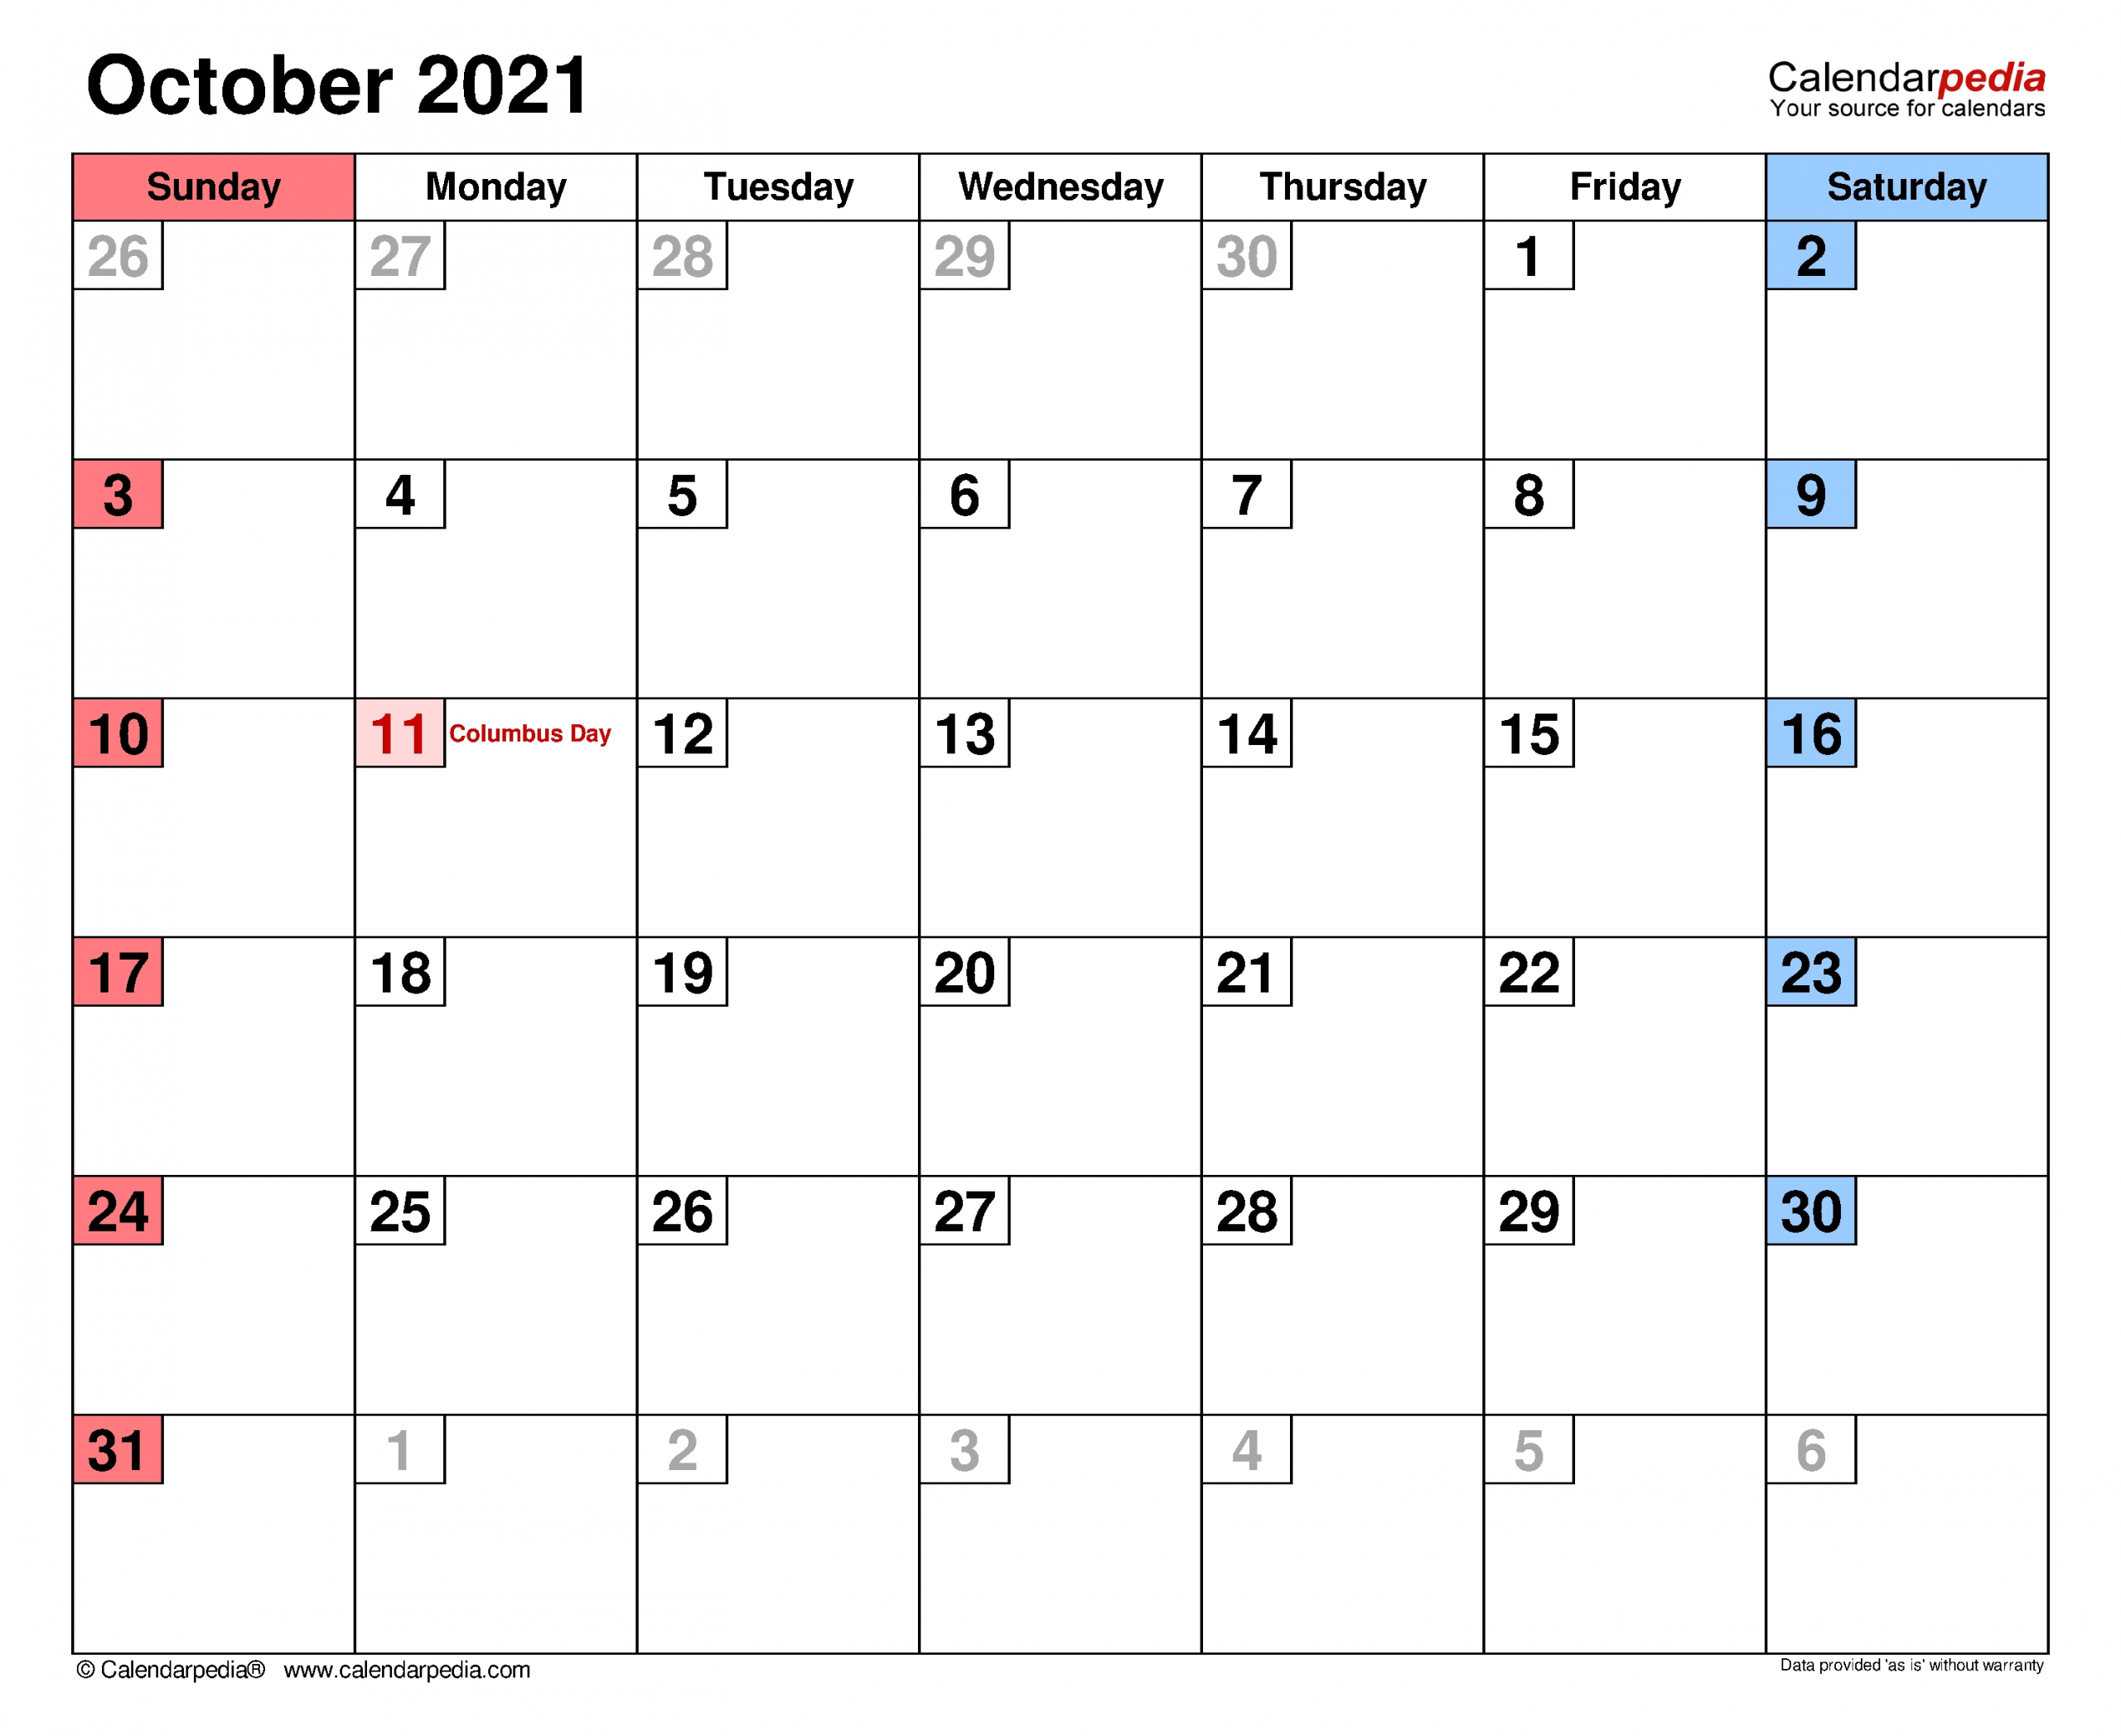 October 2021 Calendar | Templates For Word, Excel And Pdf